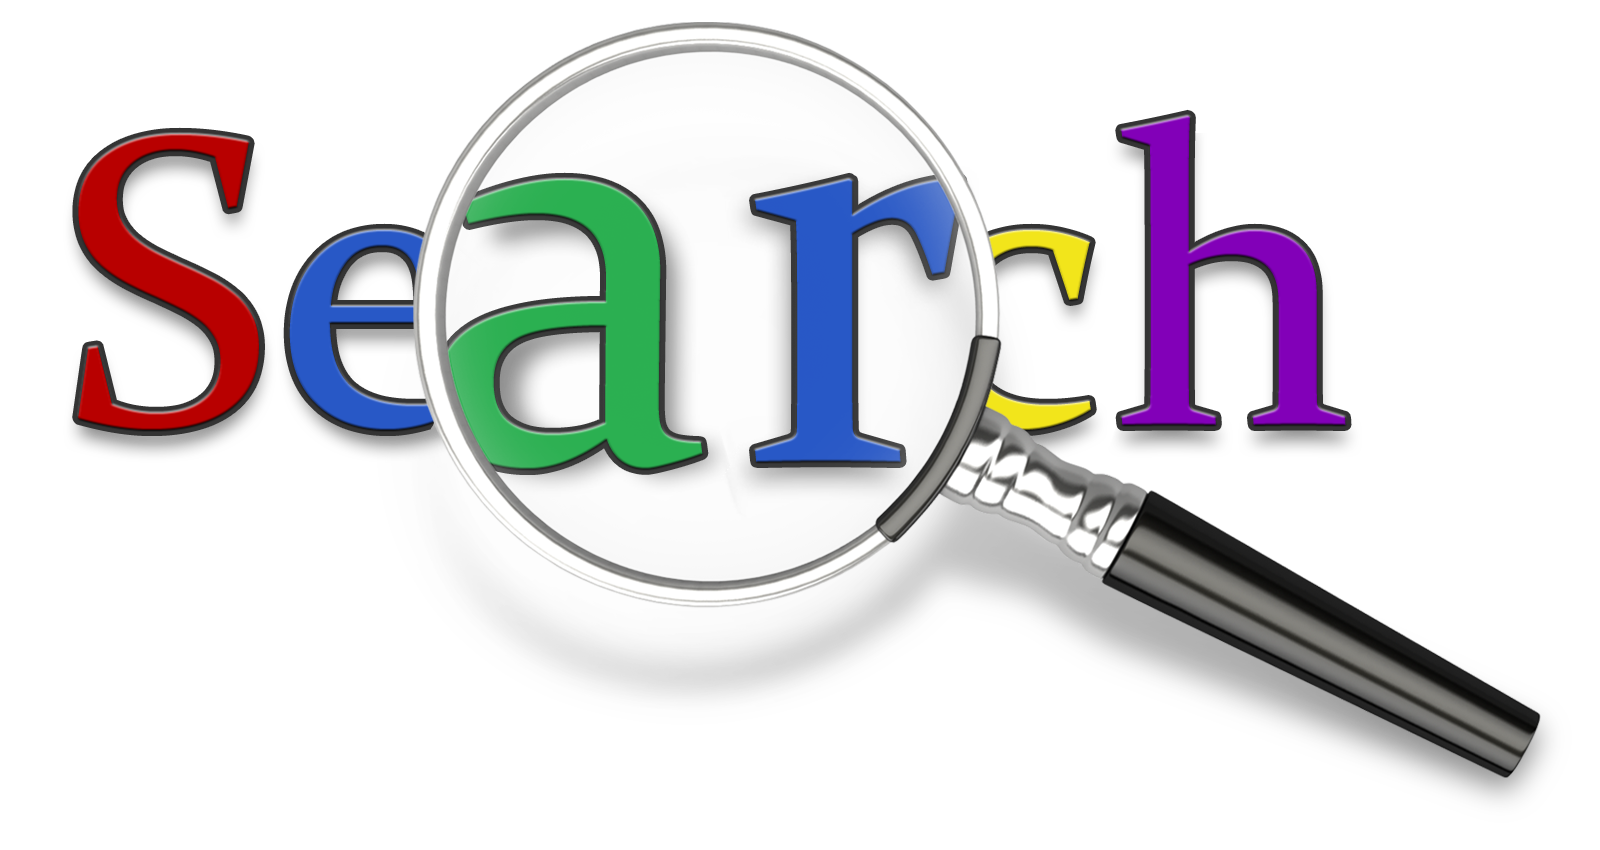 Top 10 Search Engines List | HostOnNet.com